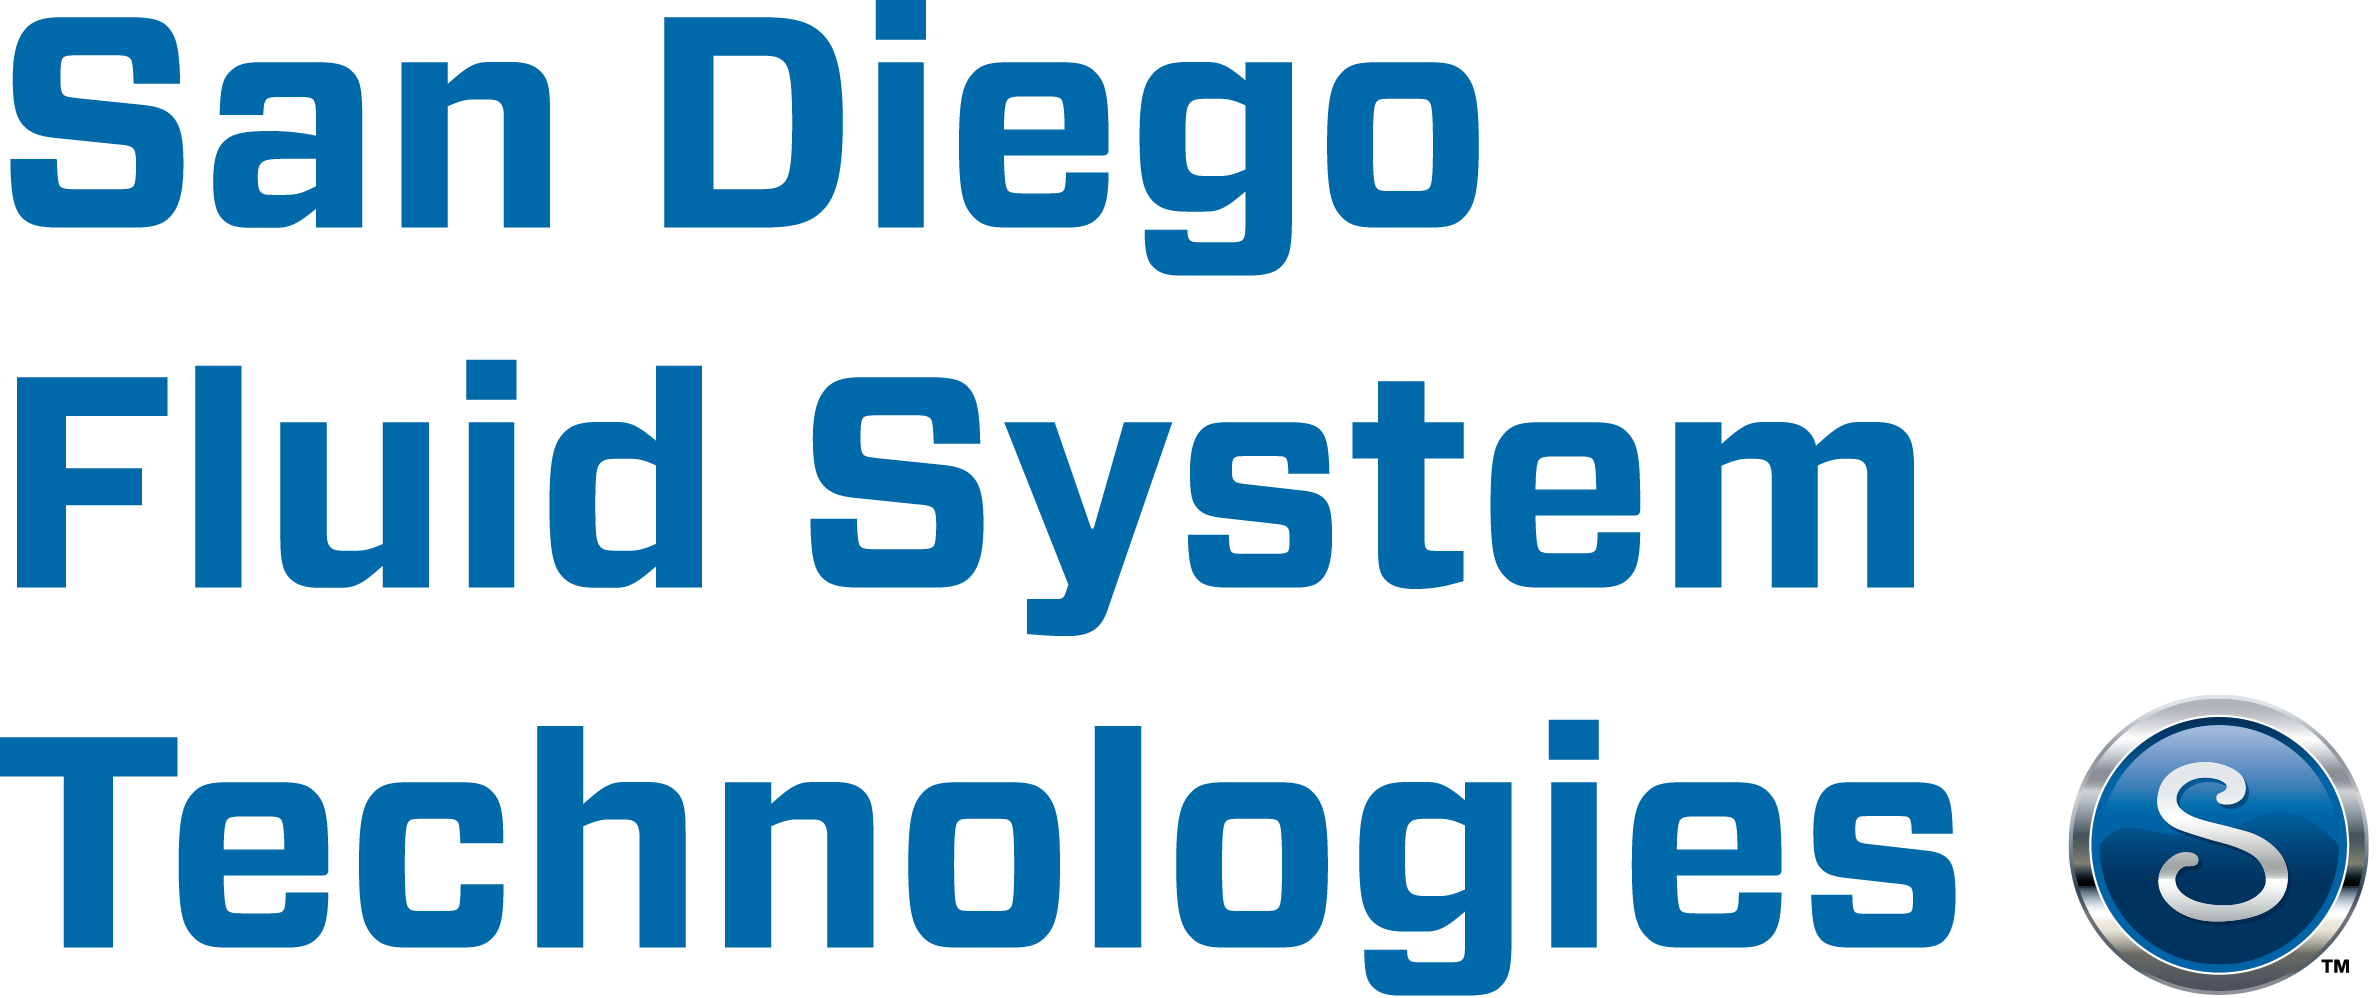 San Diego Fluid Systems